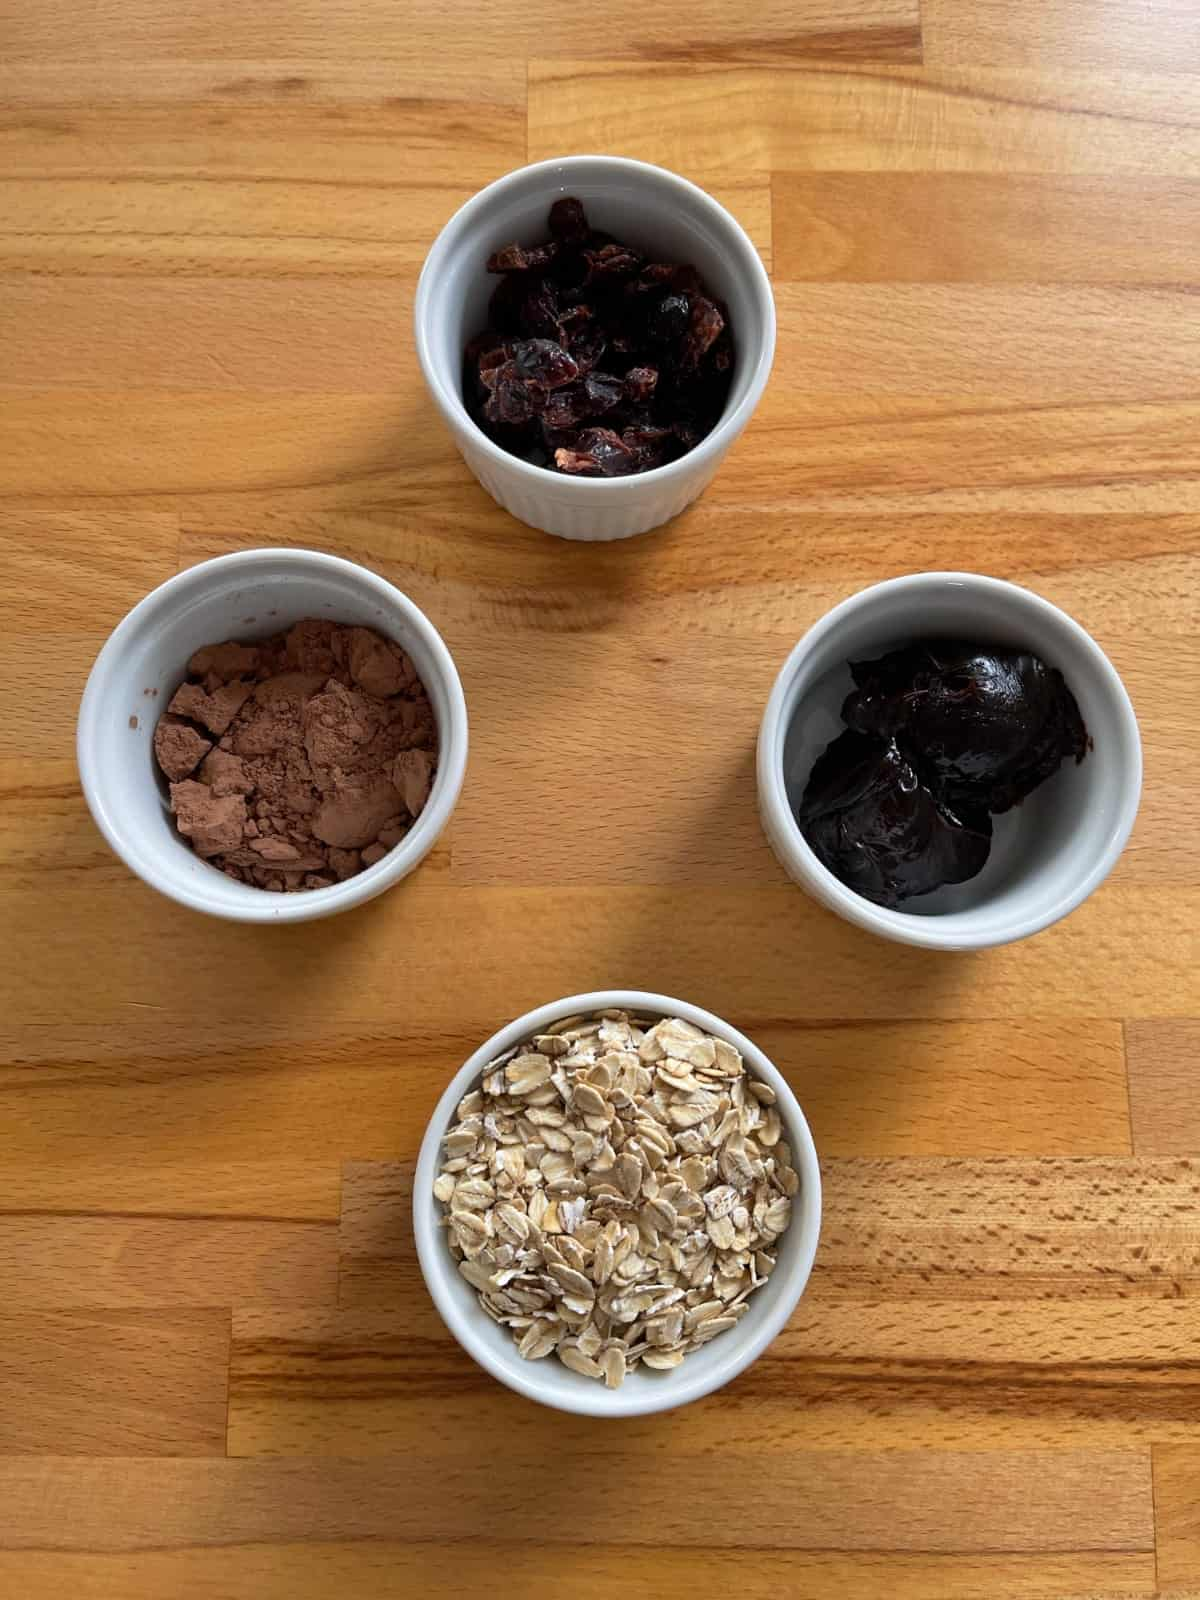 Hot fudge, dried cranberries, cocoa powder and rolled oats in small white ramekins on wood table.